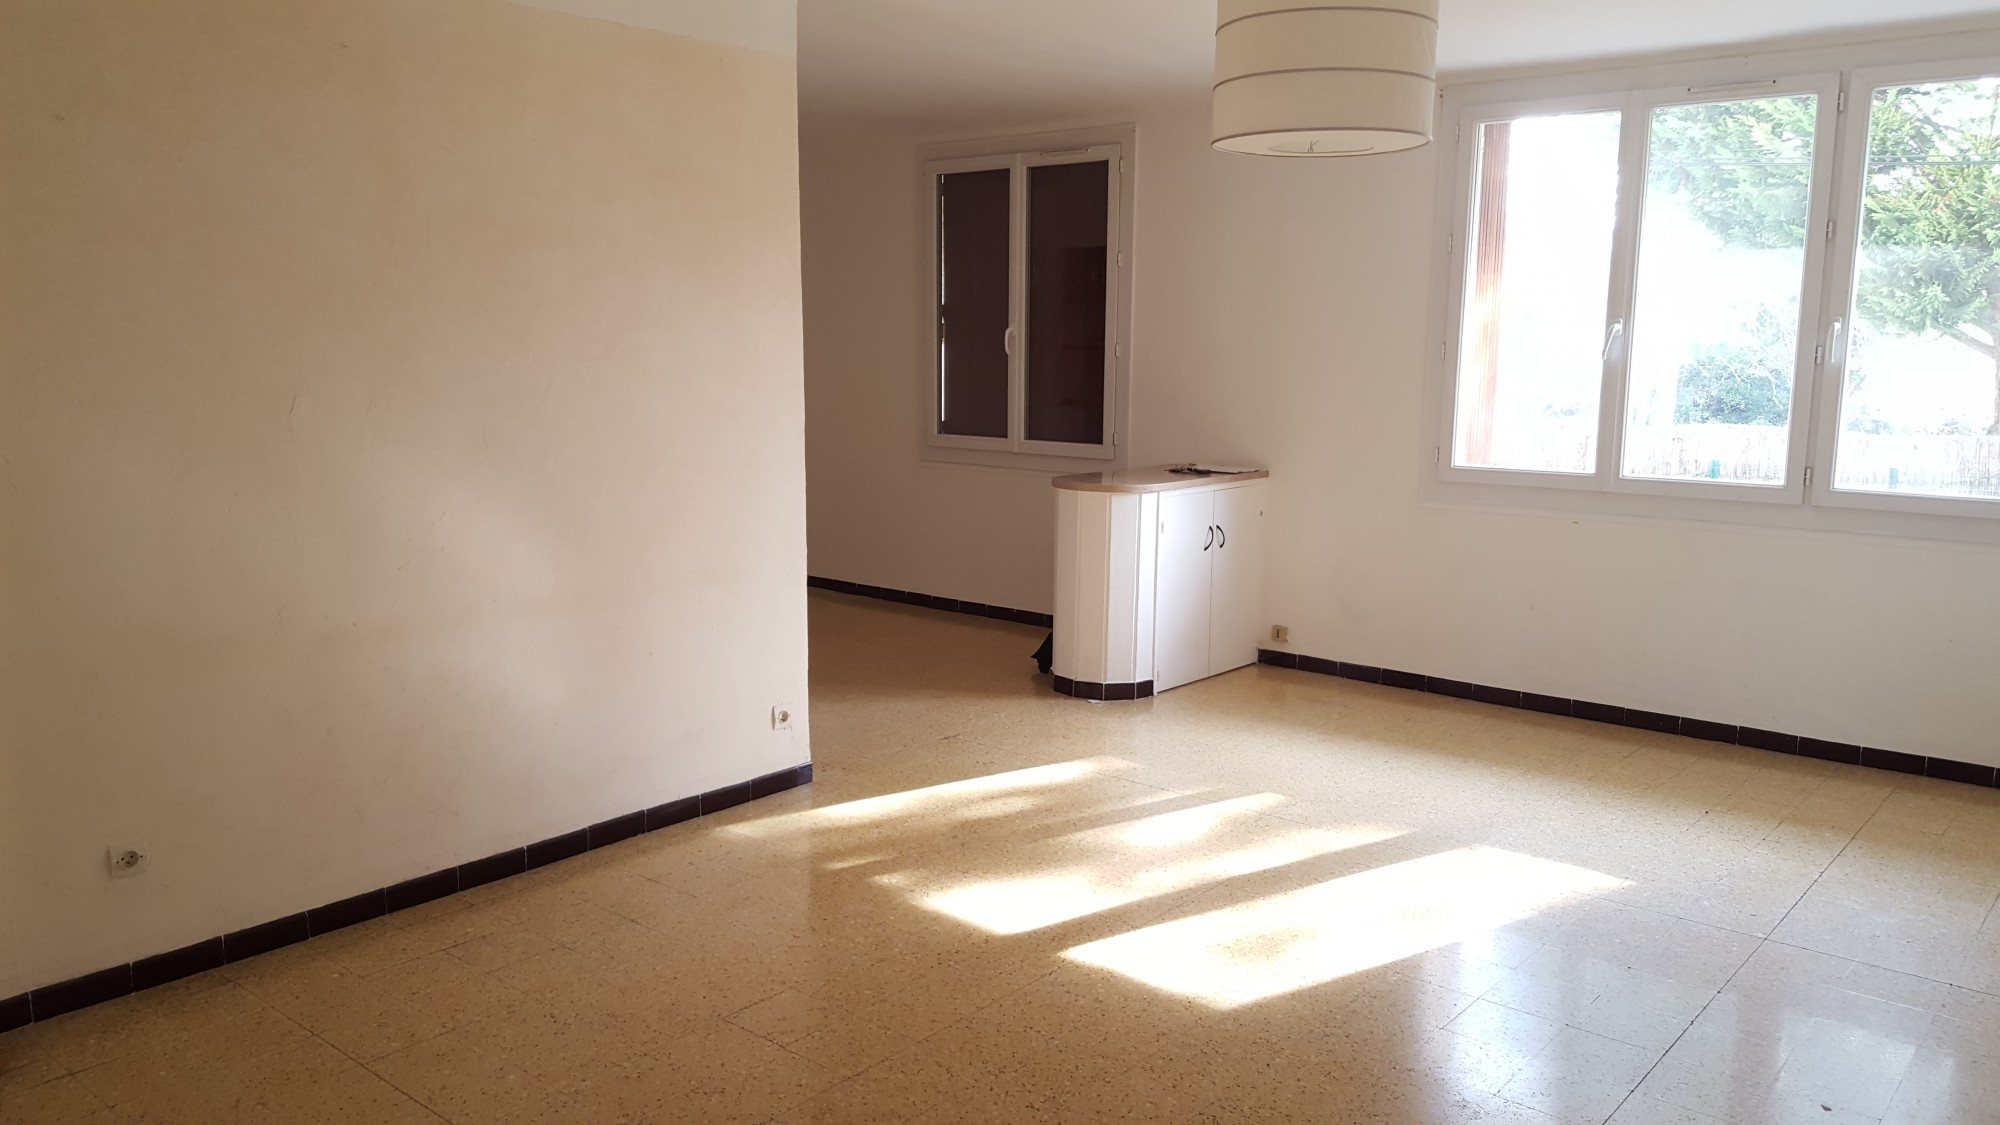 A vendre appartement t3 de en rdc sureleve avec 2 for Vente appartement rdc